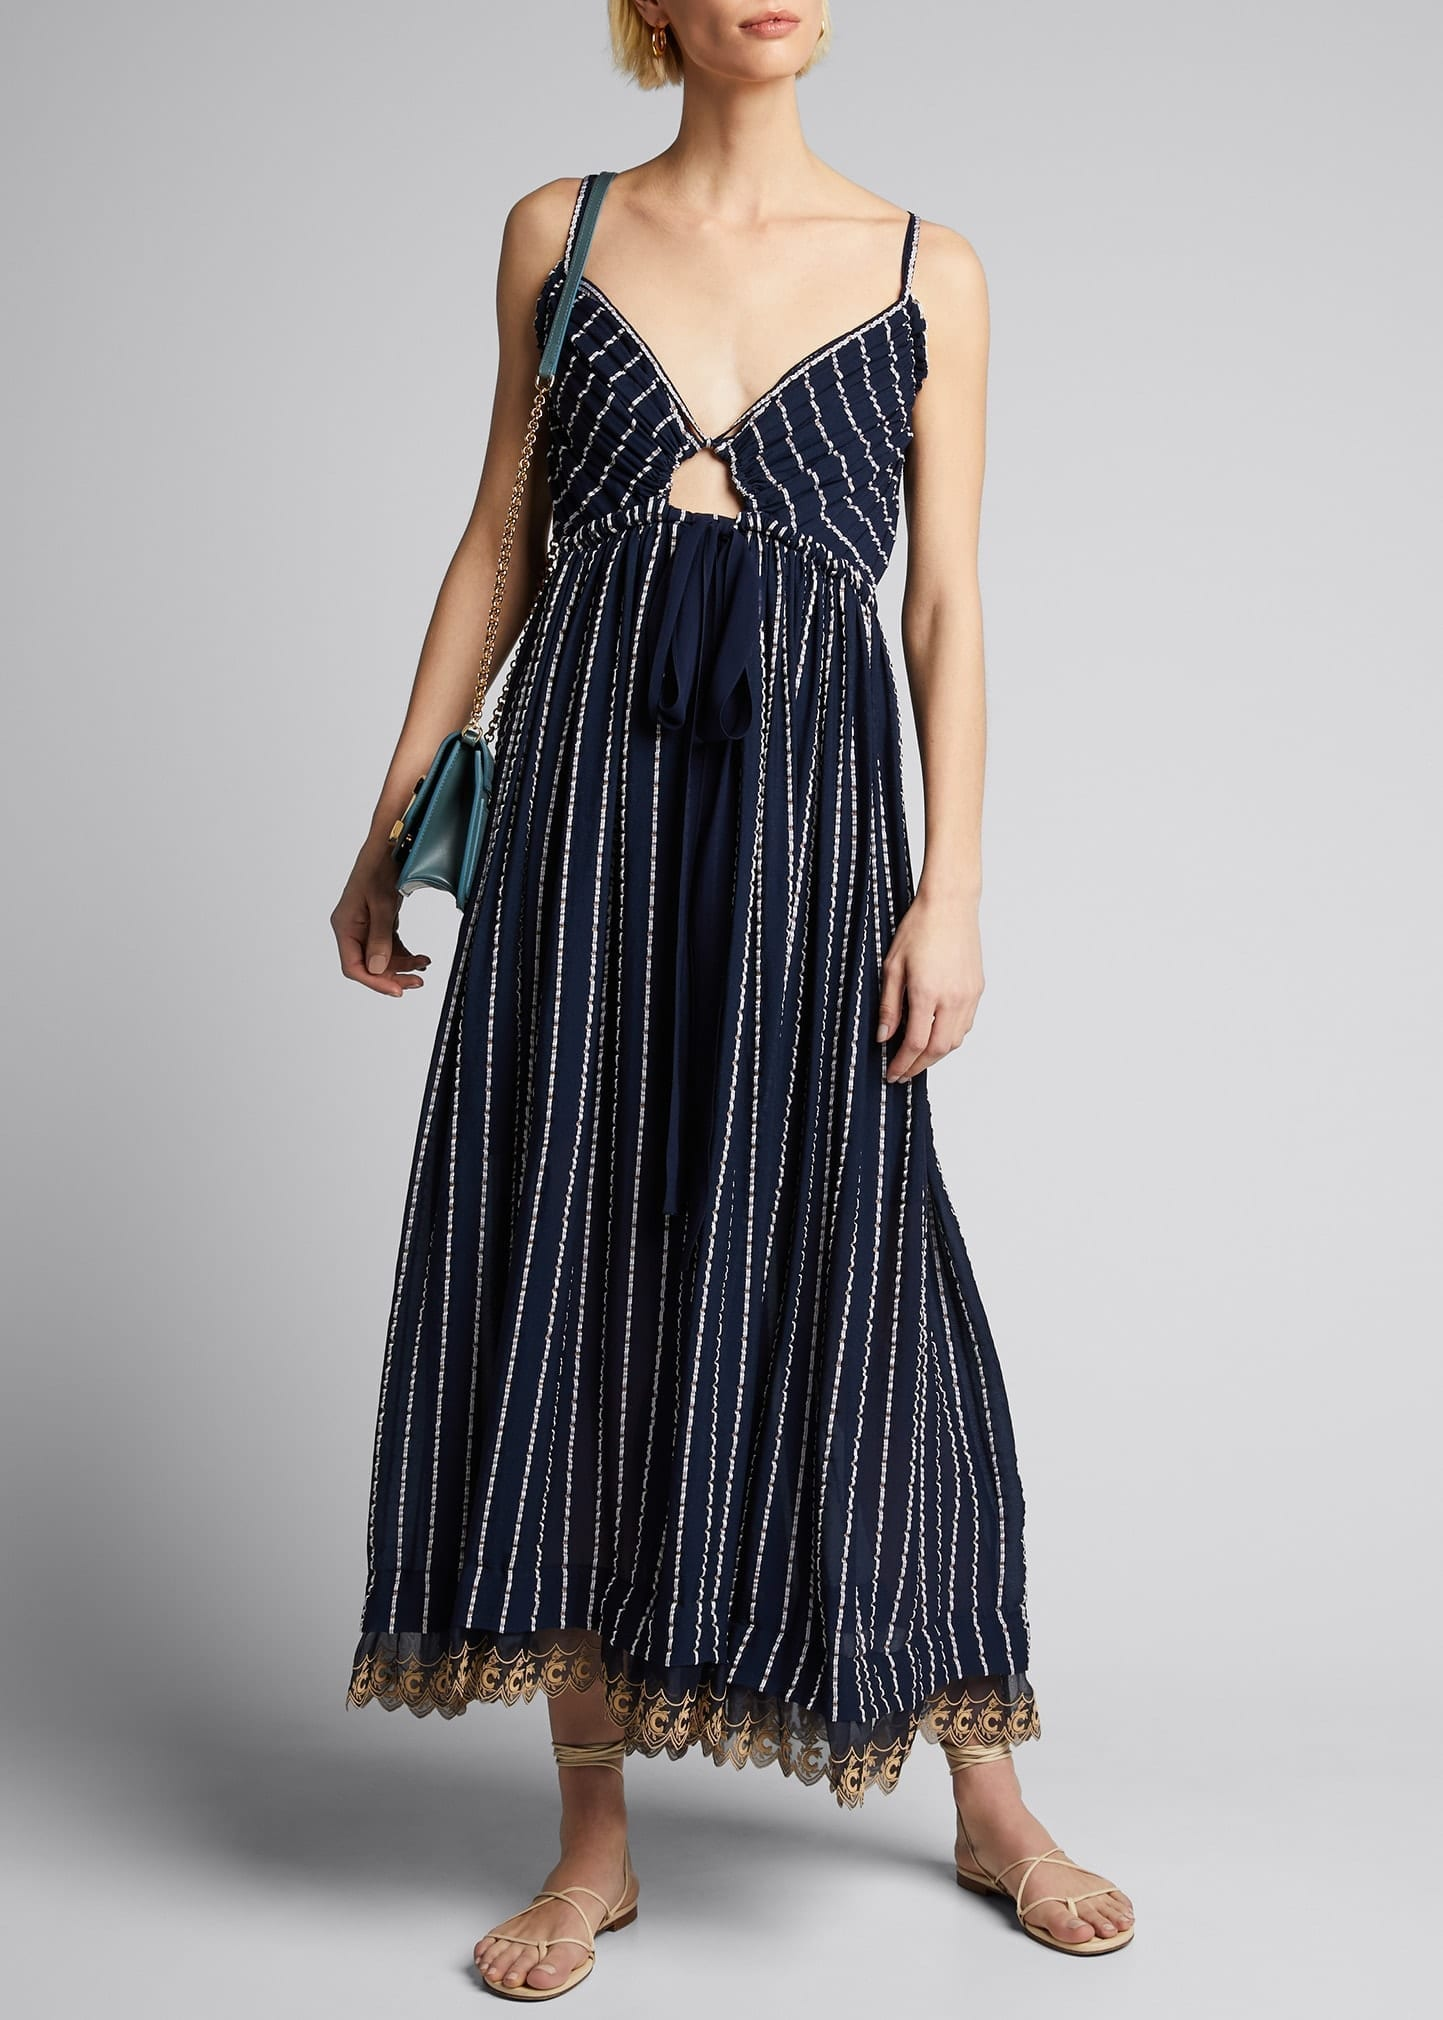 CHLOE Striped Silk-Cotton V-Neck Dress